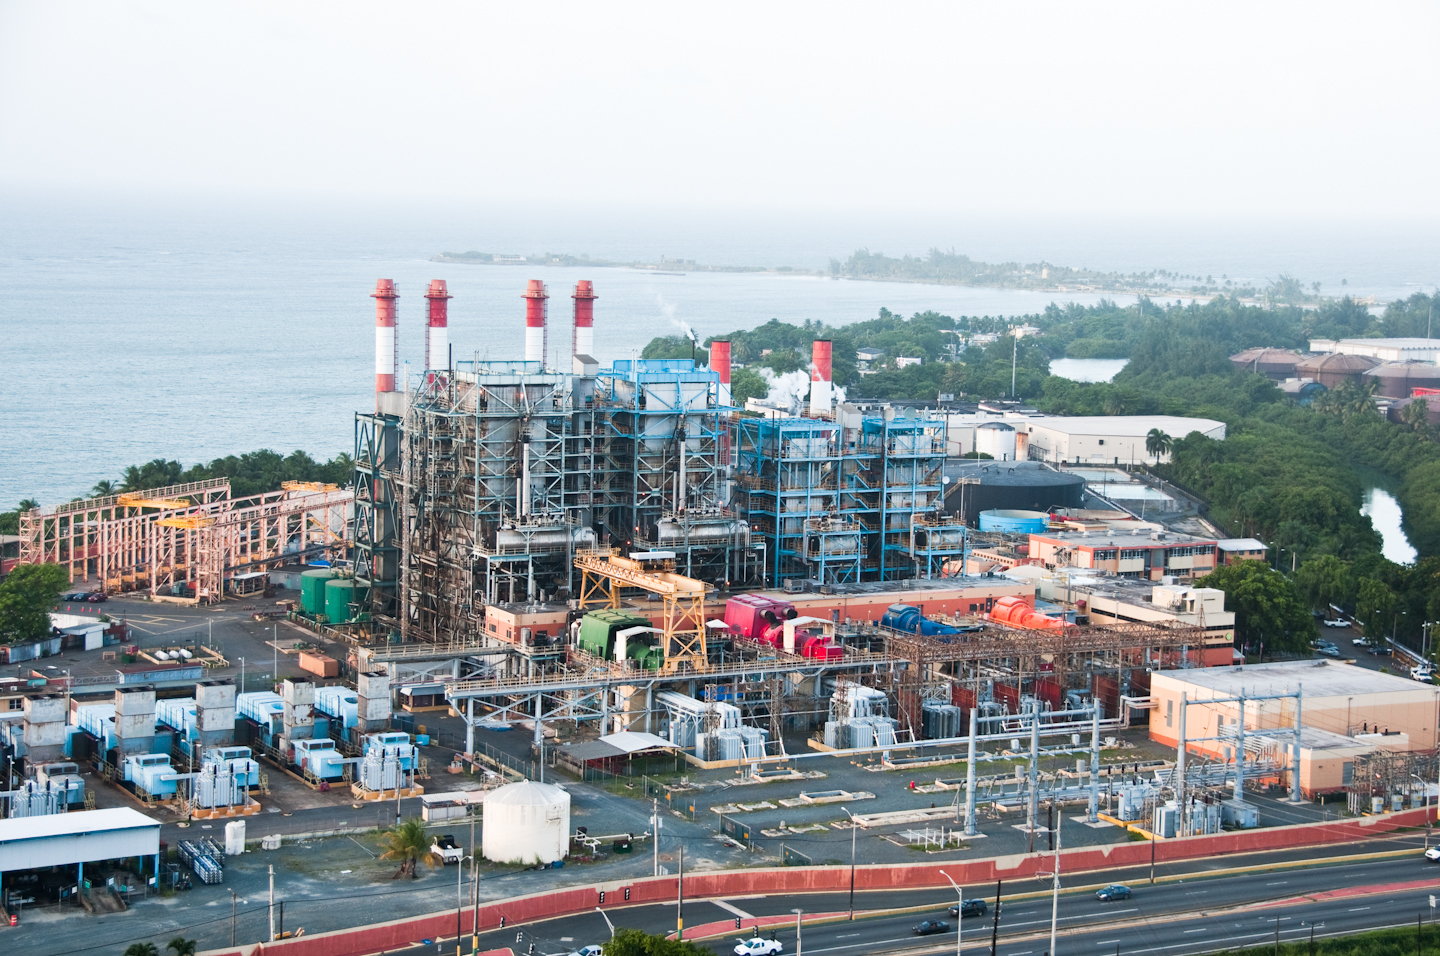 https://assets.sourcemedia.com/4a/24/e2c502474bf9830901079bf959a2/photo-of-prepa-central-palo-seco-toa-baja-power-plant.jpg